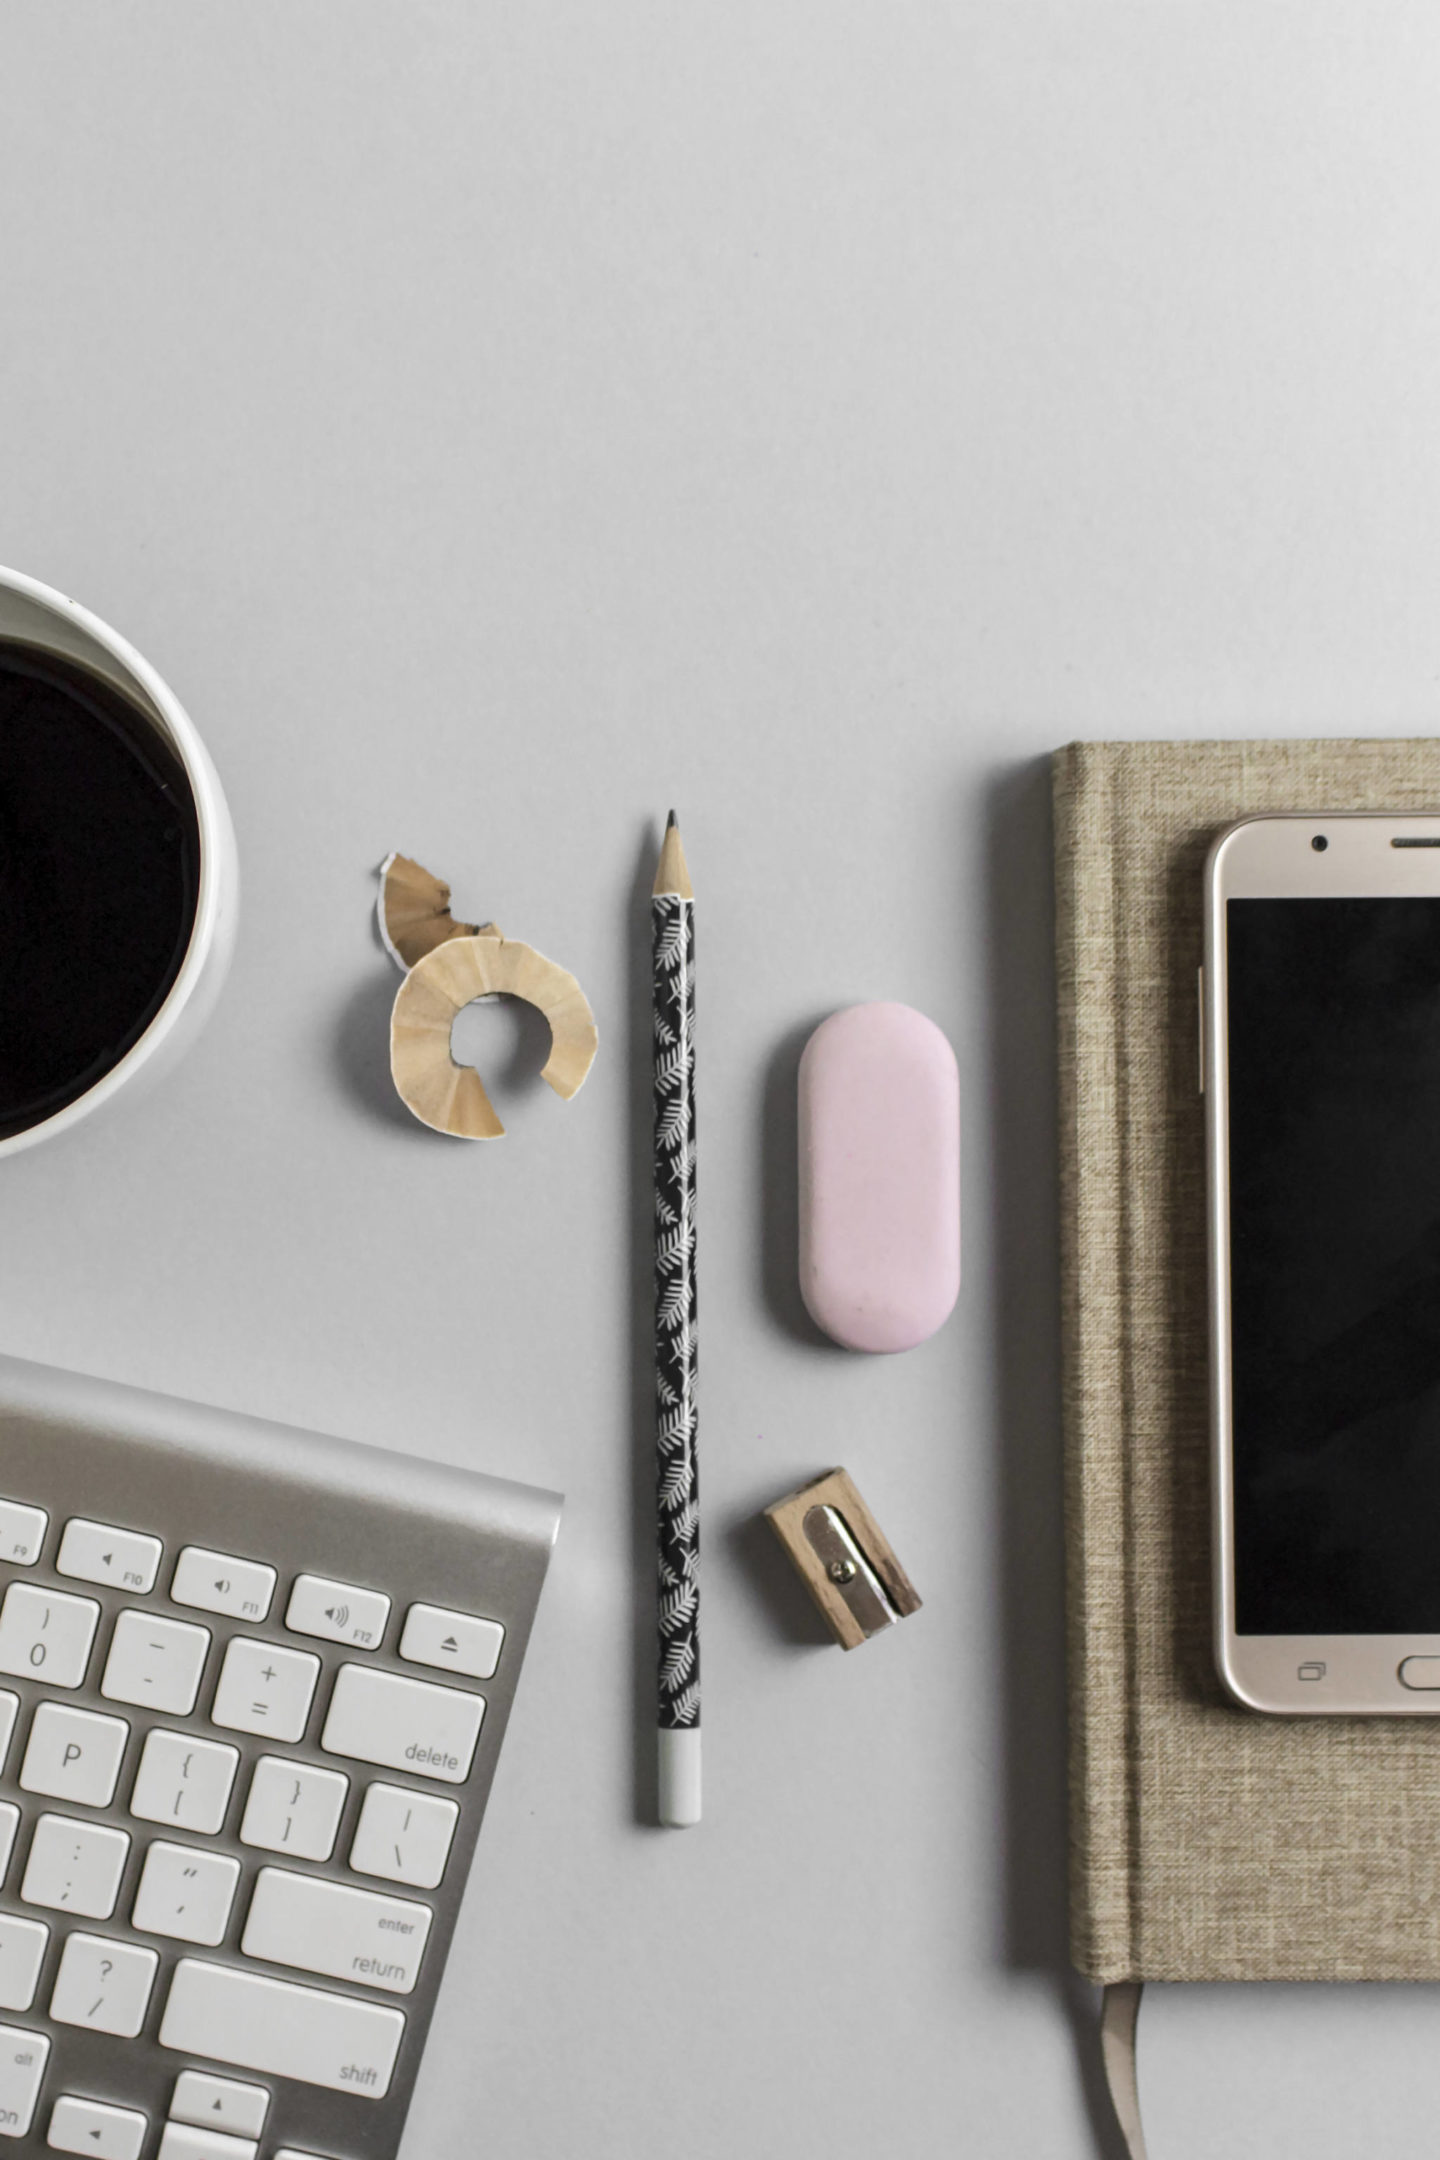 stationery and phone on desk